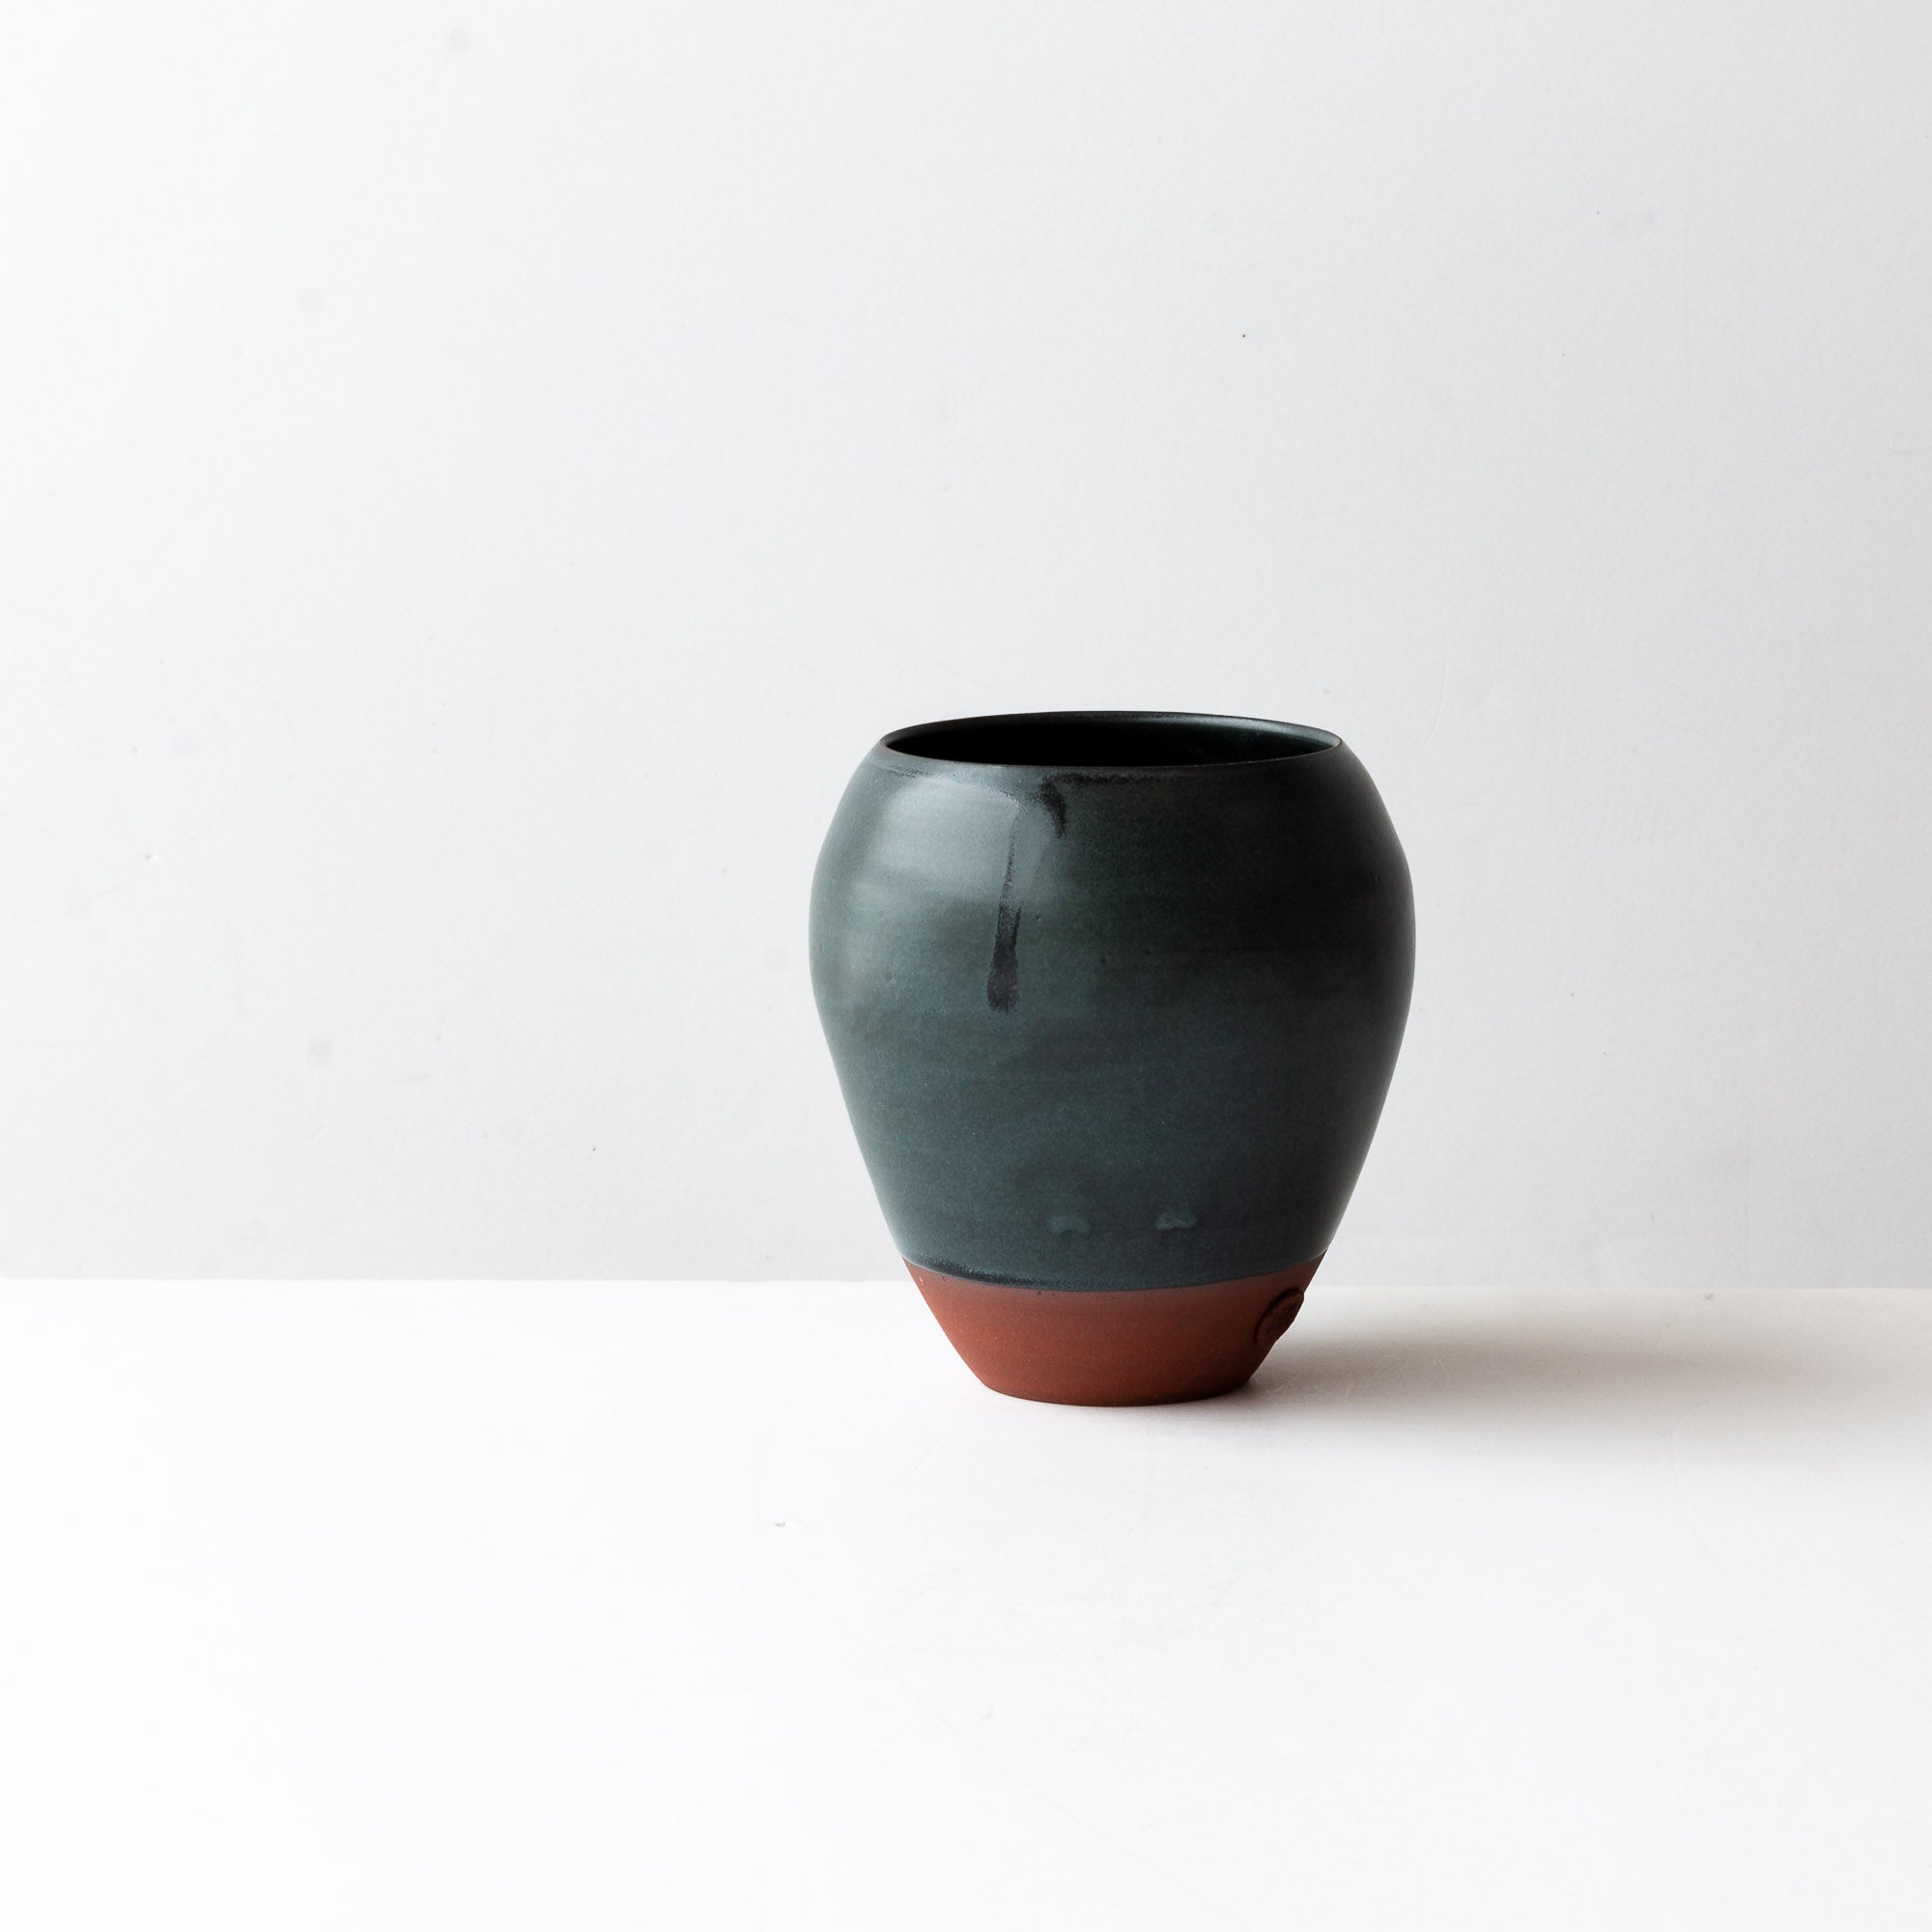 Charcoal Grey & Terracotta Flower Vase - Handmade in Stoneware - Sold by Chic & Basta